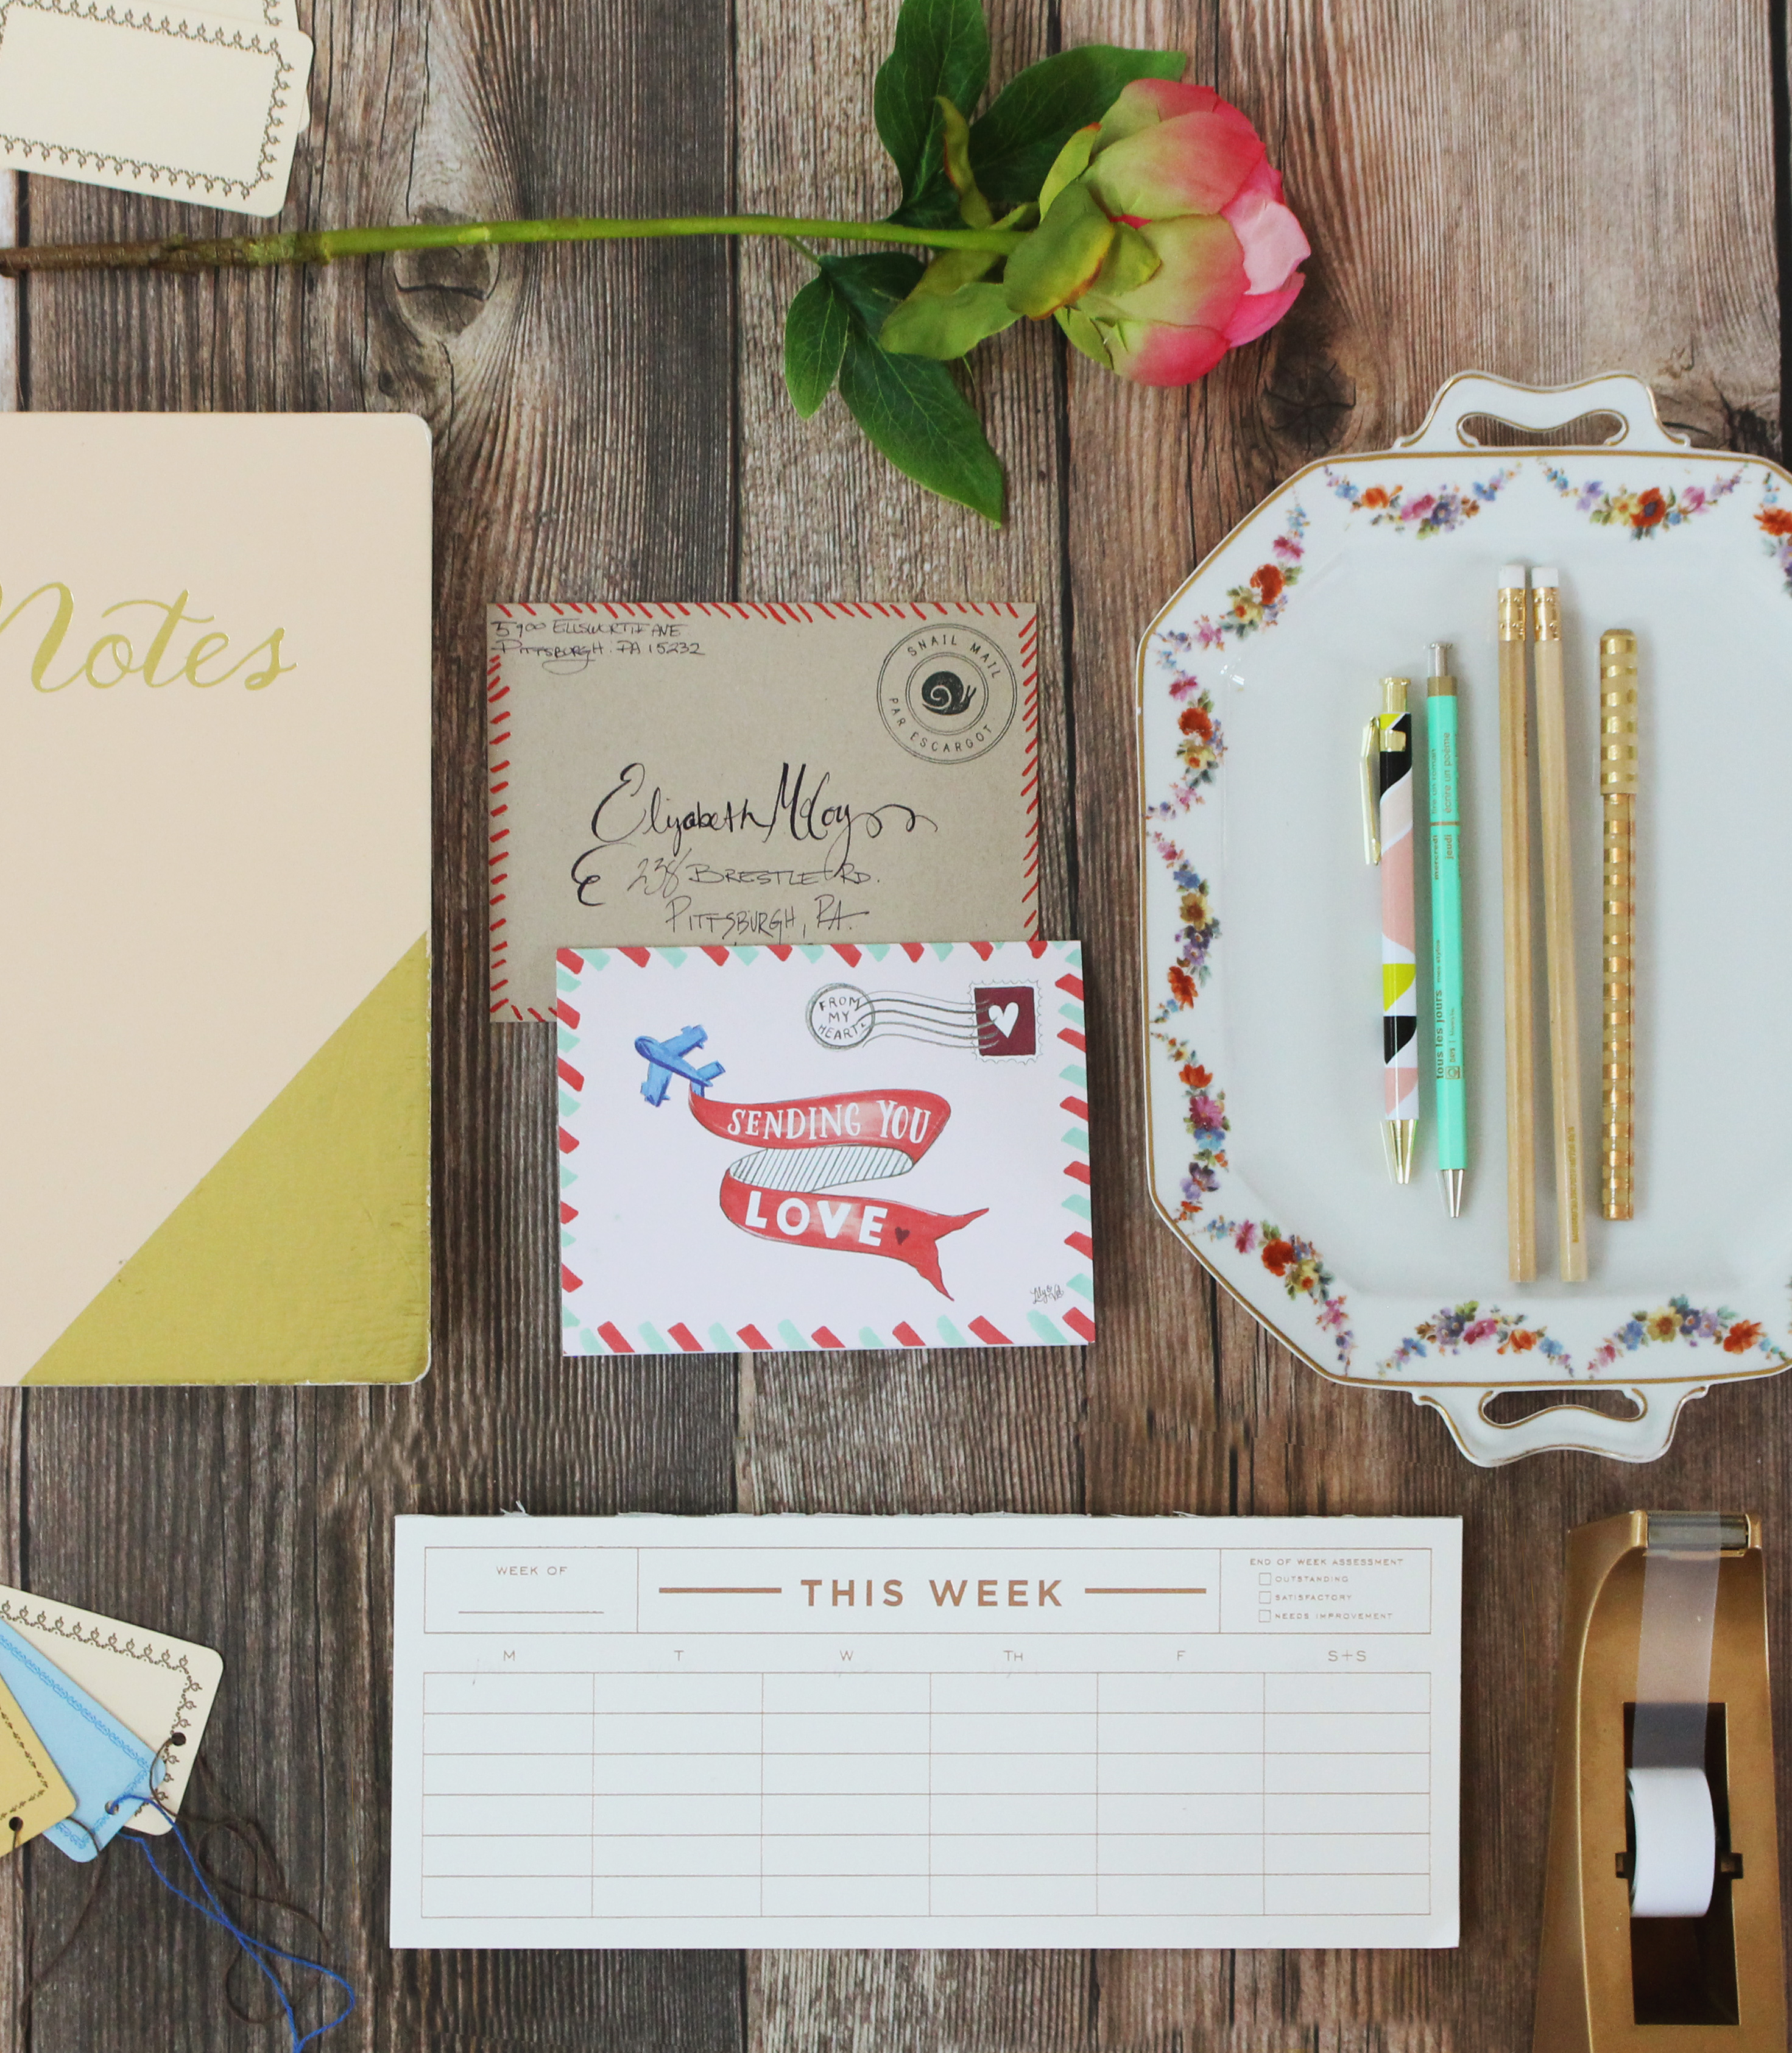 5 Reasons Why We Should Send More Handwritten Letters